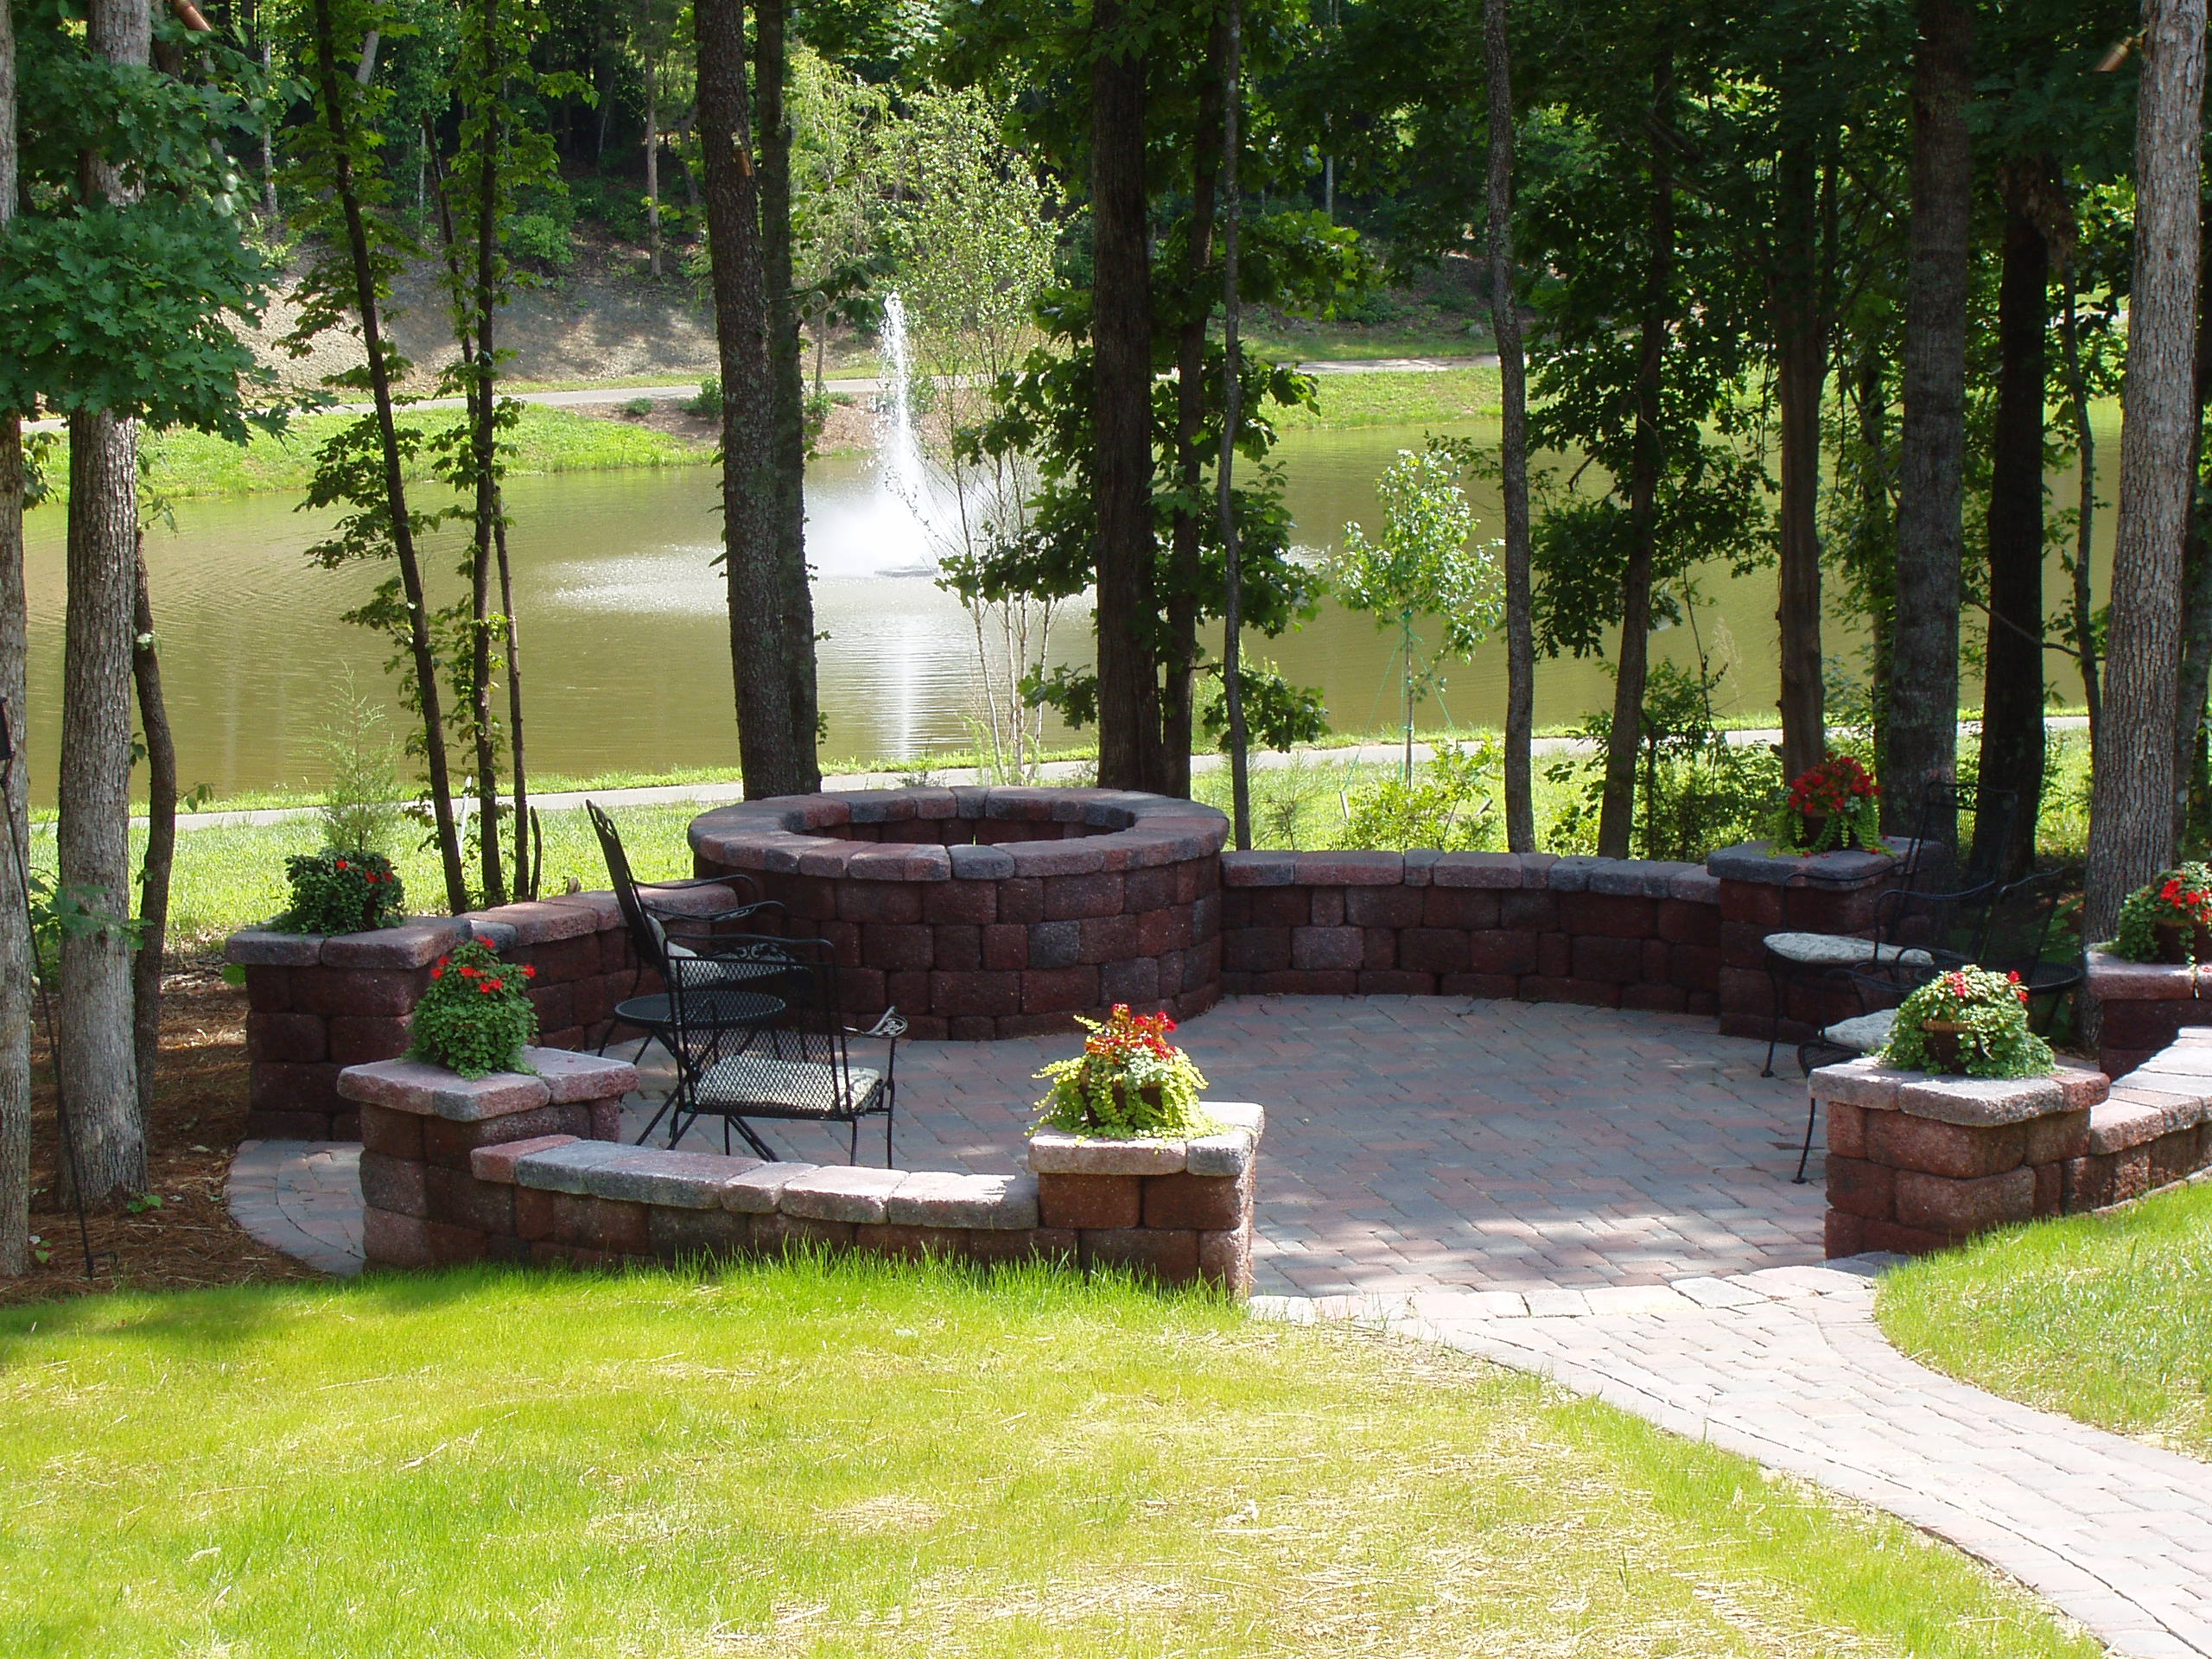 Legacy landscaping inc indian trail nc 28079 angies list for Rosewood garden designs